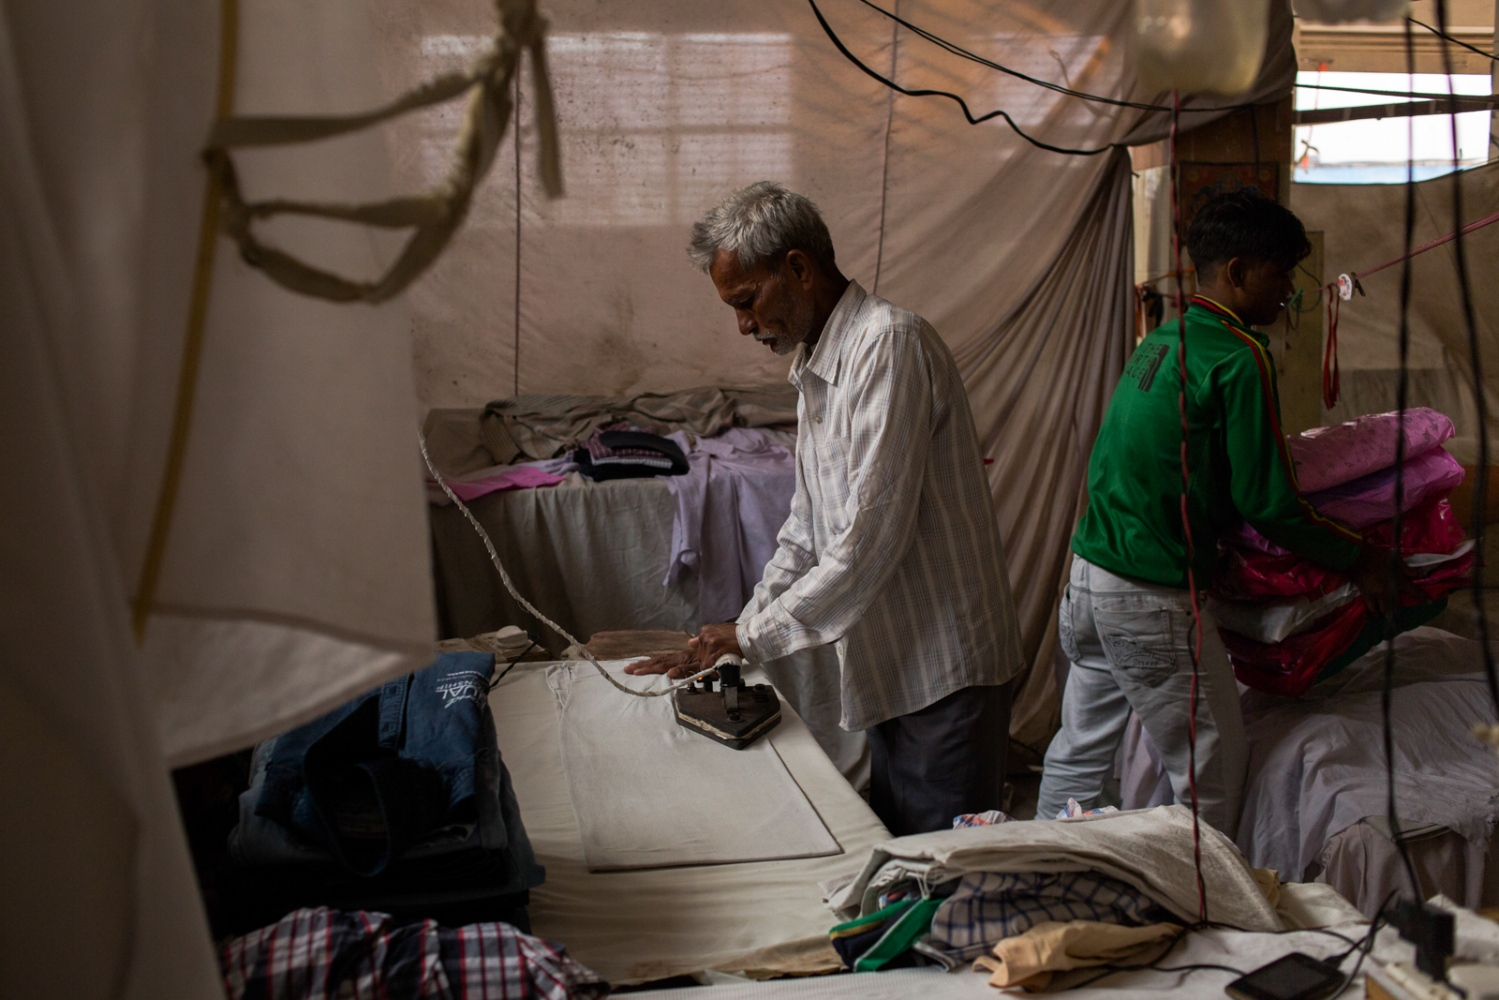 Indian washerman Abdullah Hassan (C), 54, irons an item of clothing as another worker takes freshly-ironed and packed clothes to be delivered to customers at a dhobi ghat outdoor laundry in New Delhi on February 17, 2015.